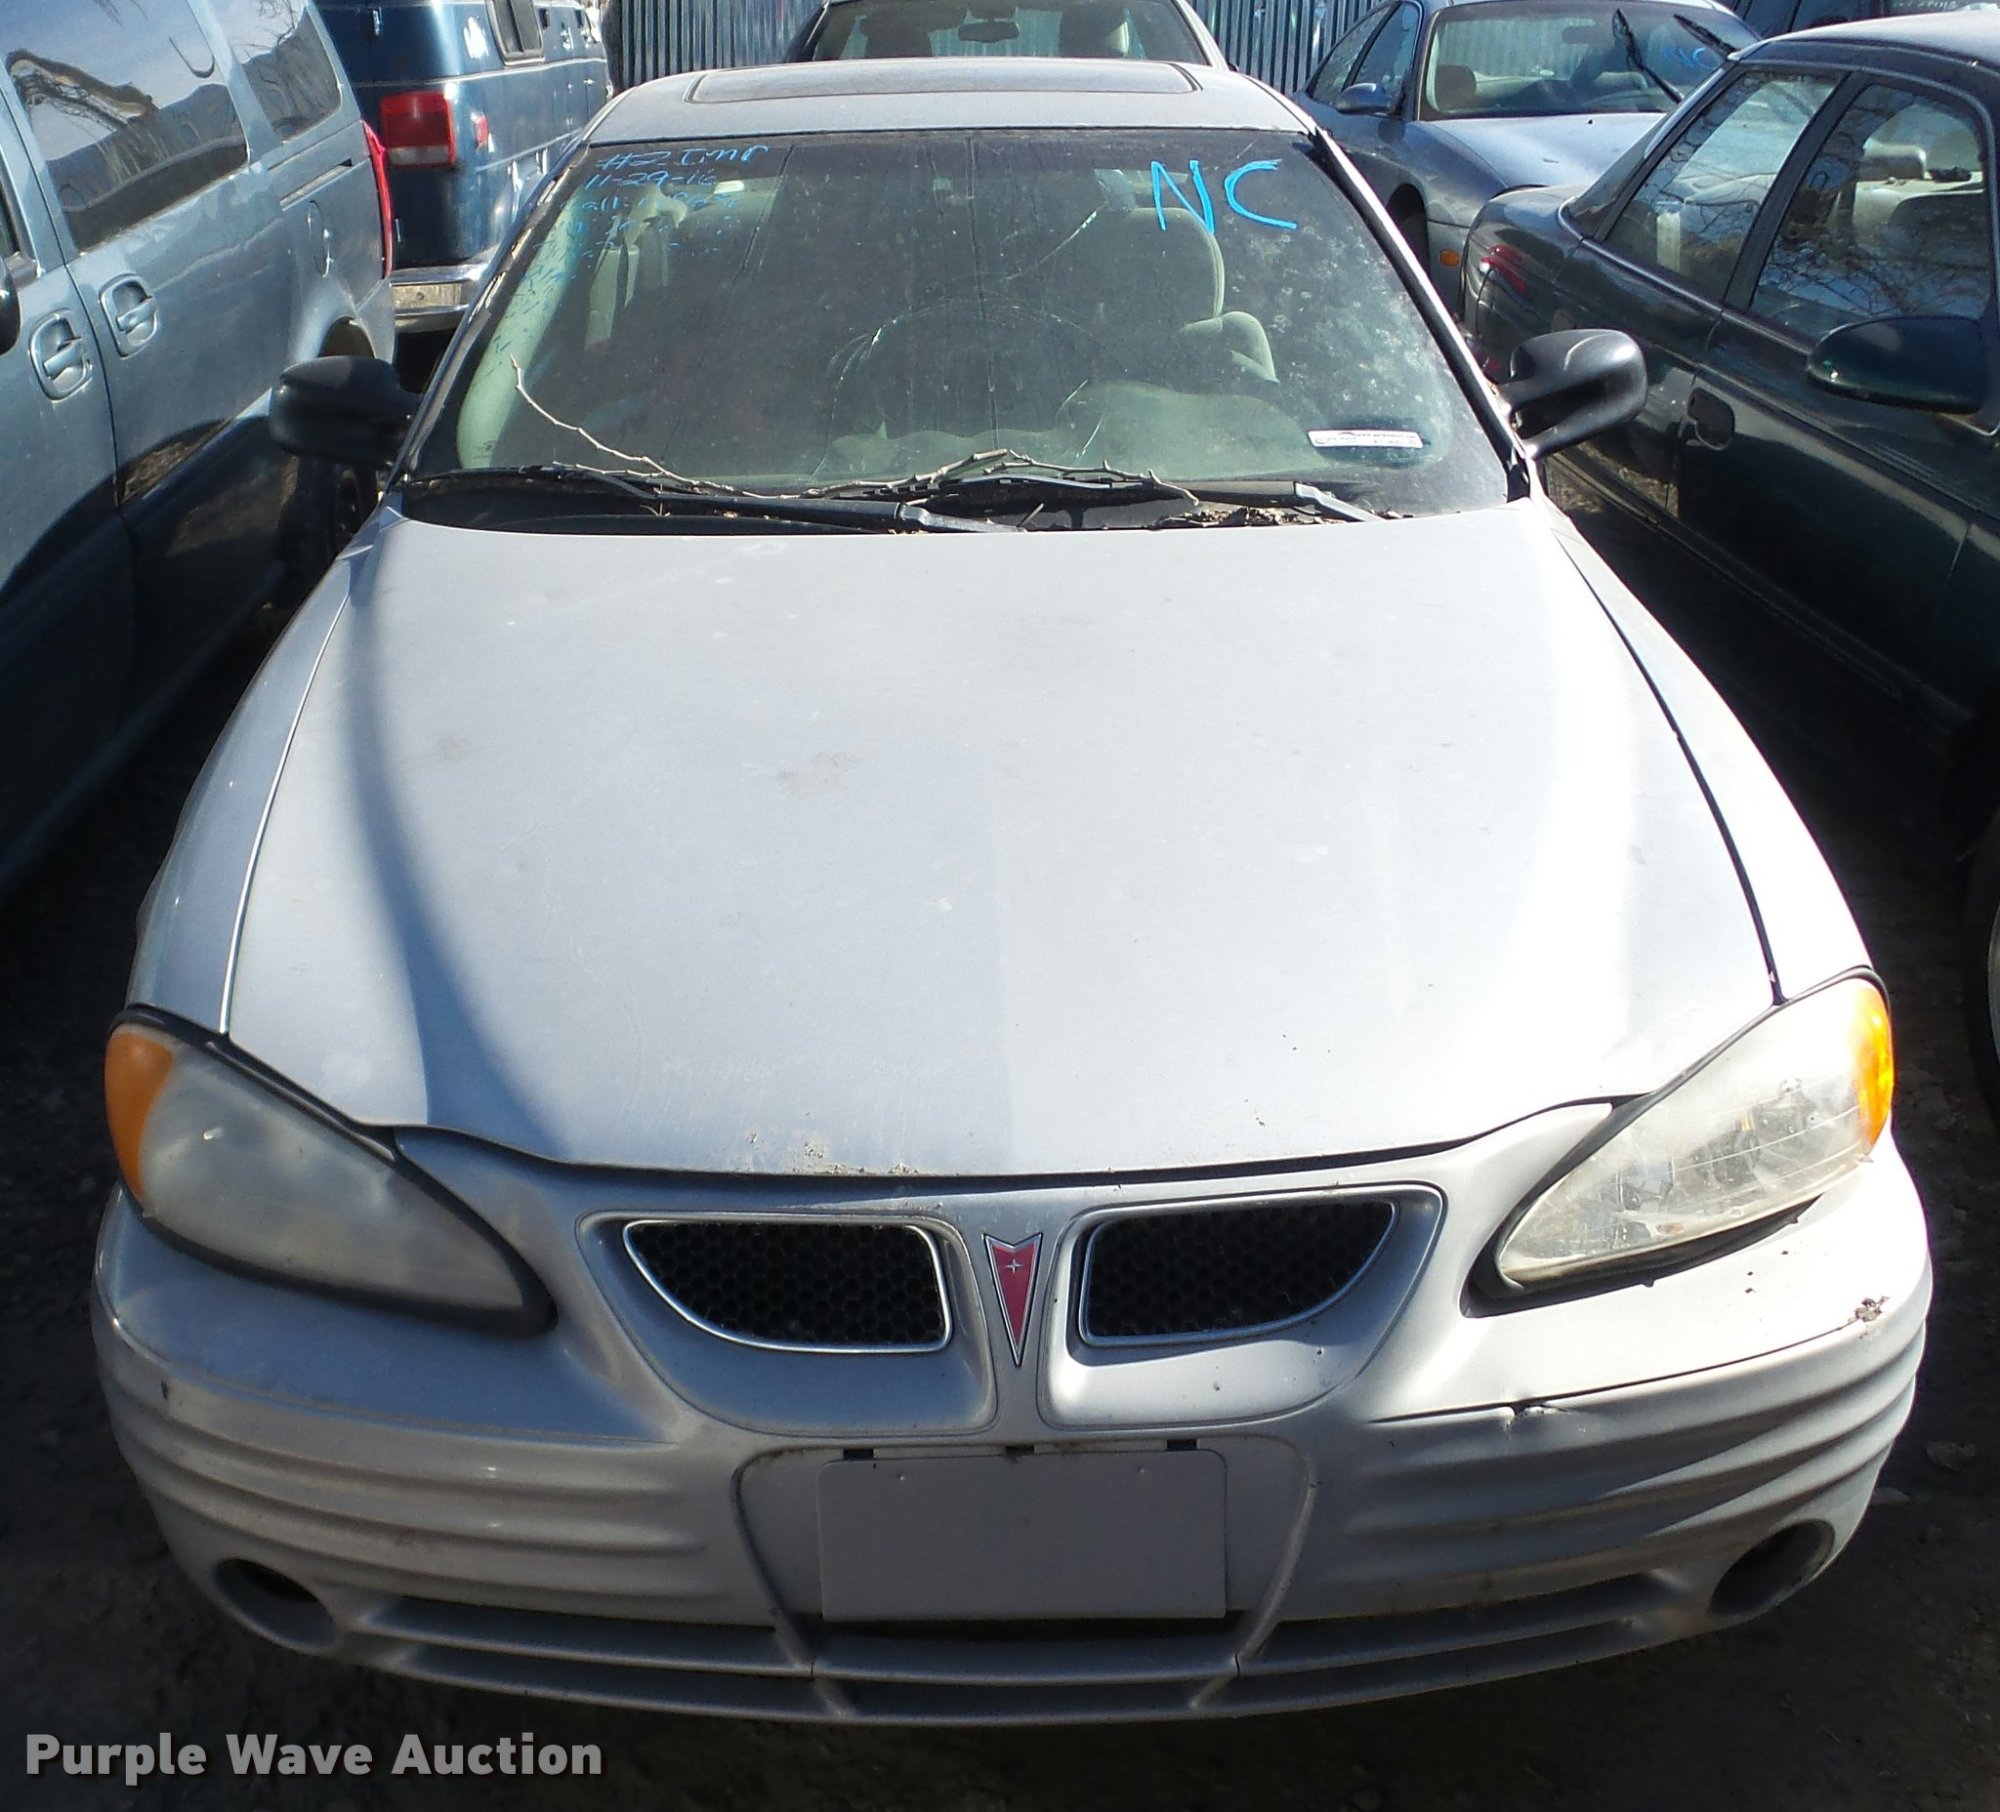 hight resolution of at9682 image for item at9682 1999 pontiac grand am